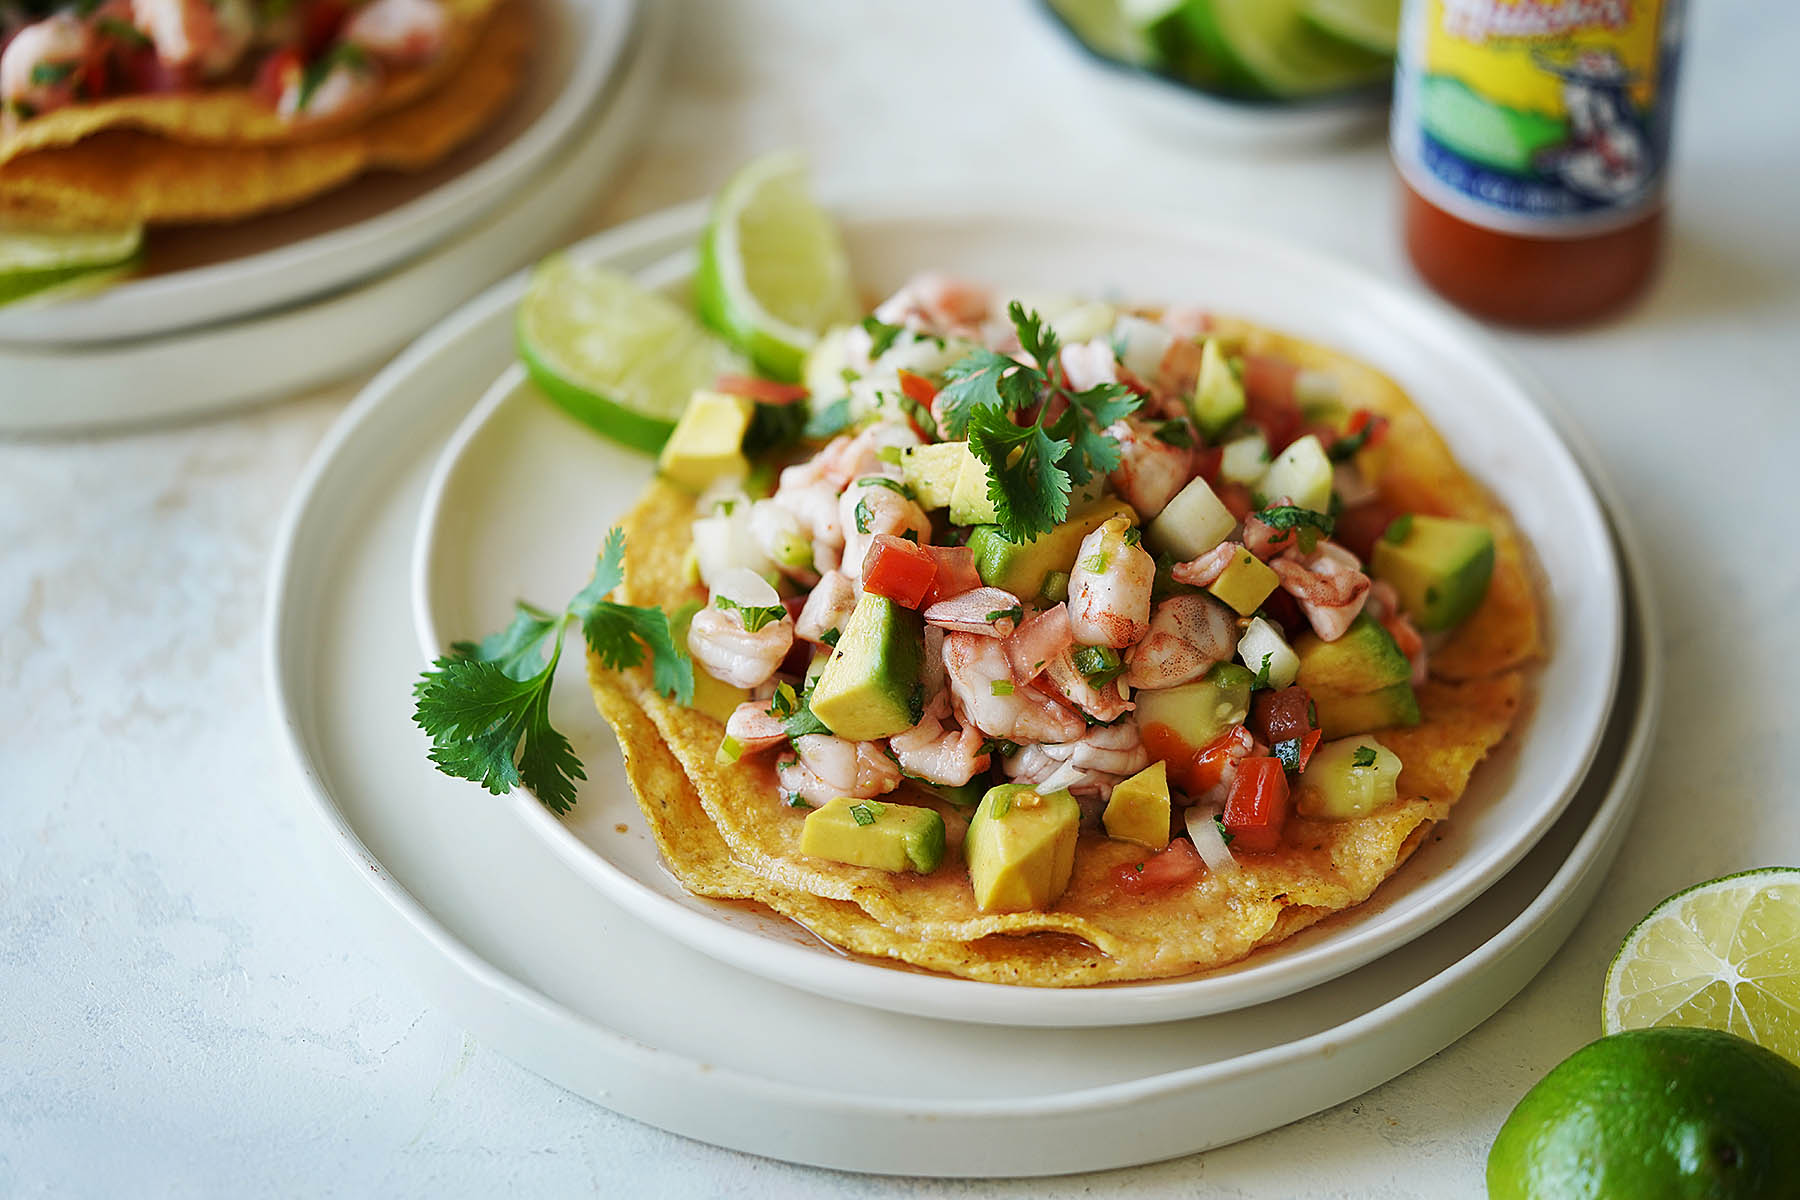 A shrimp ceviche tostada on a white plate and limes on the side.